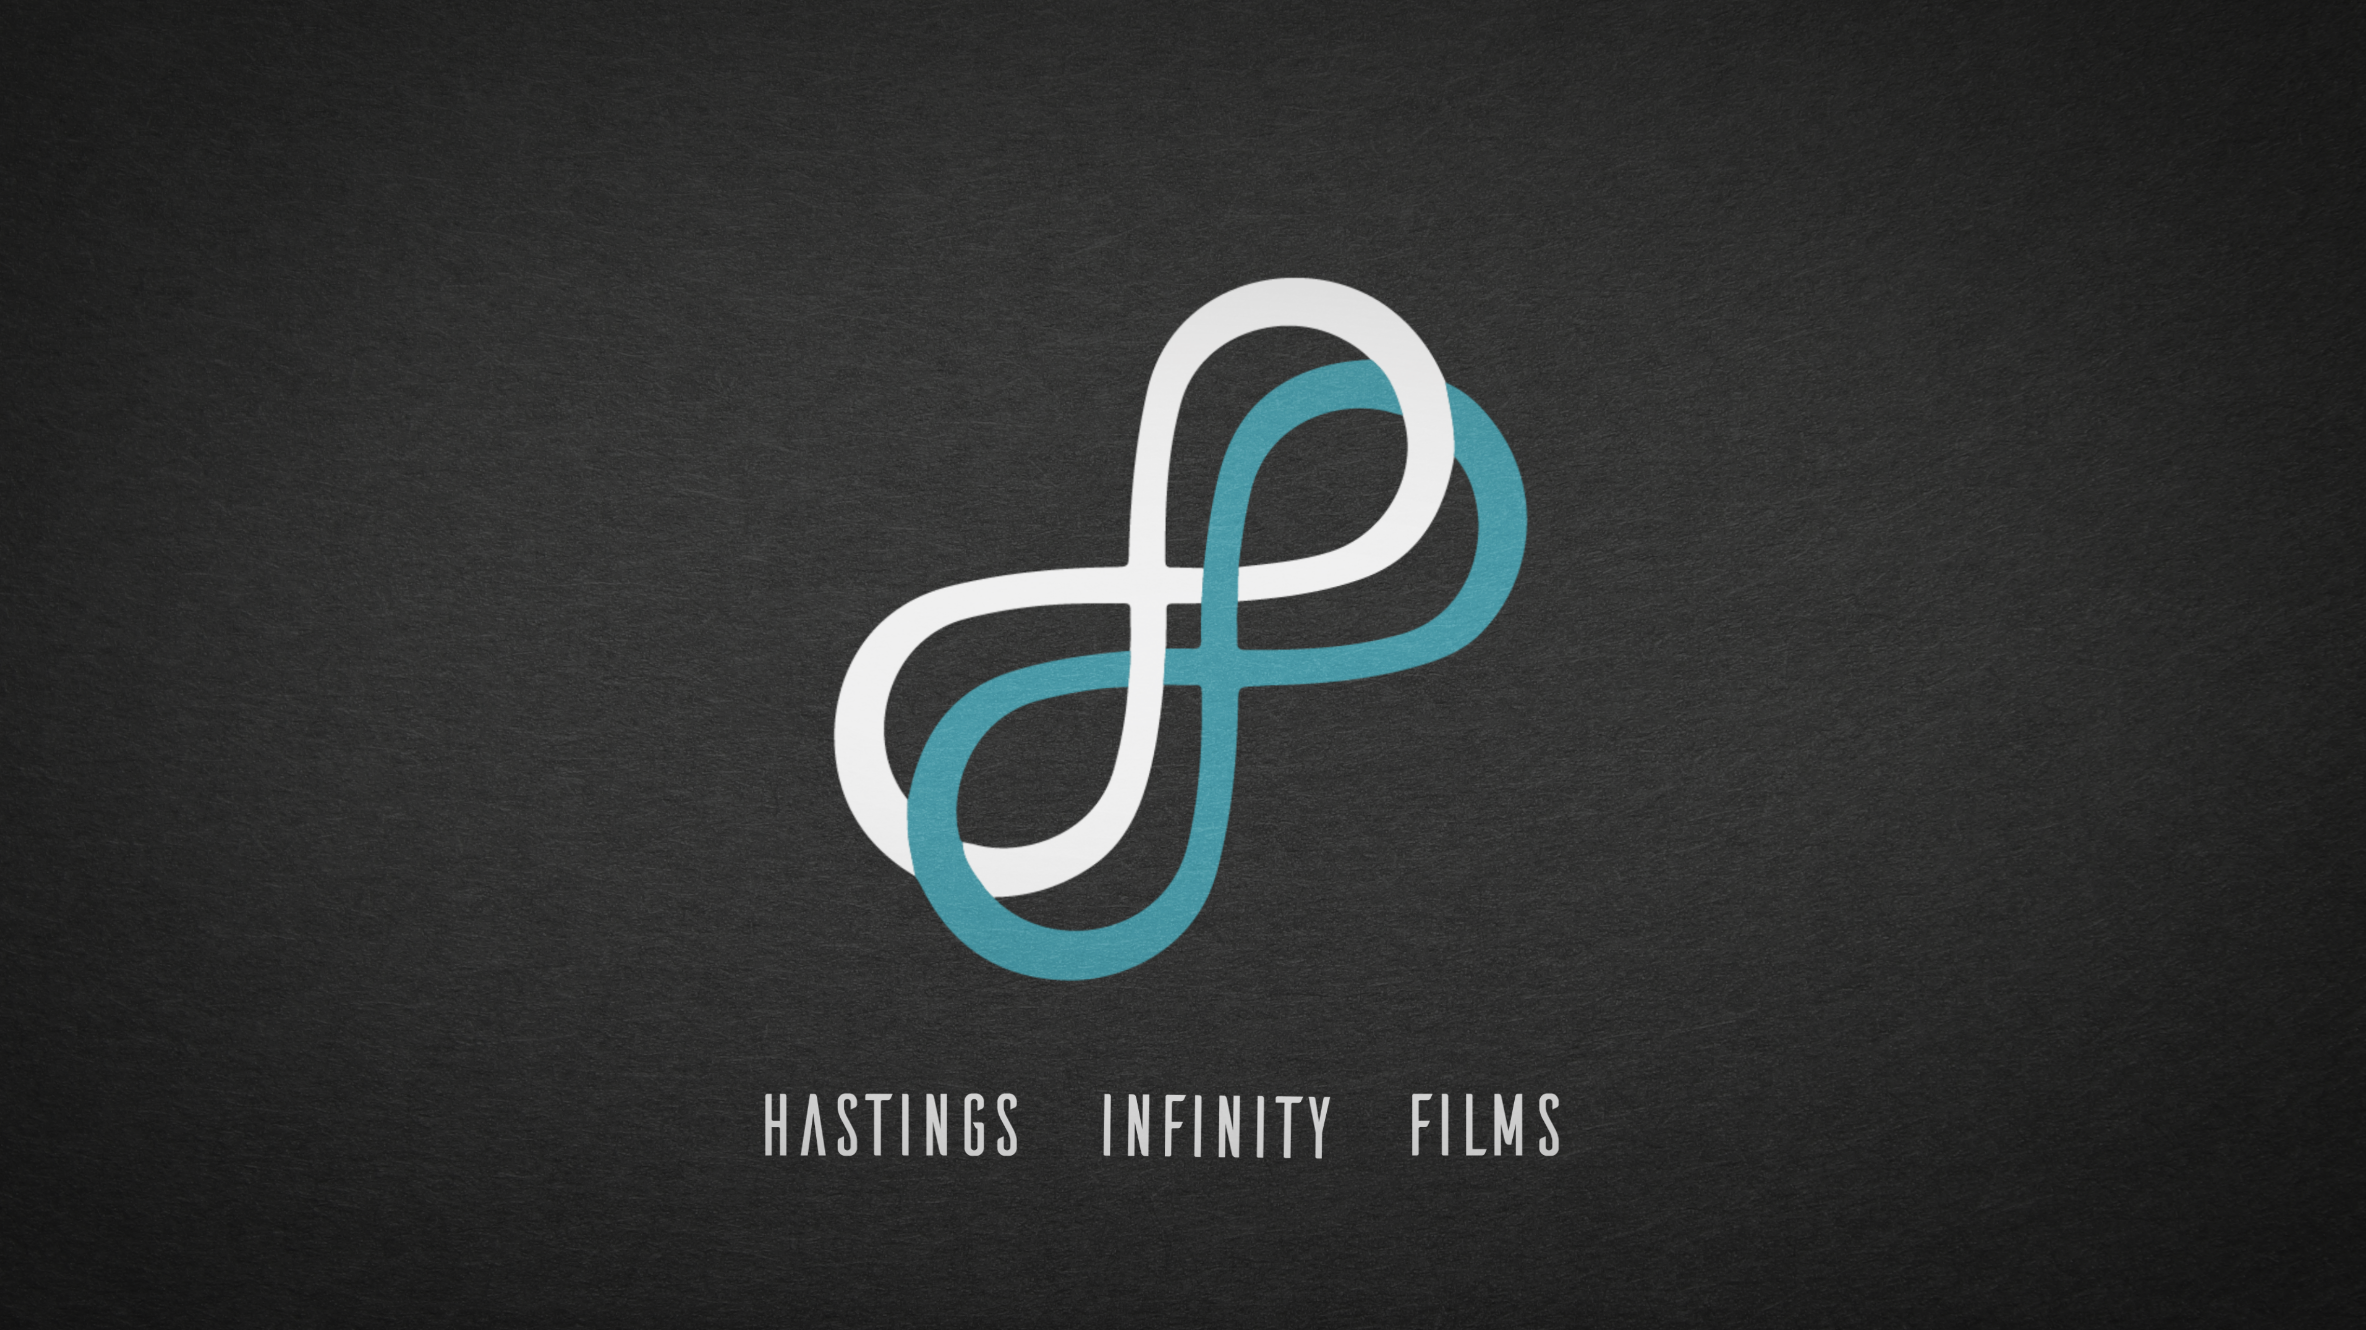 Hastings Infinity Films